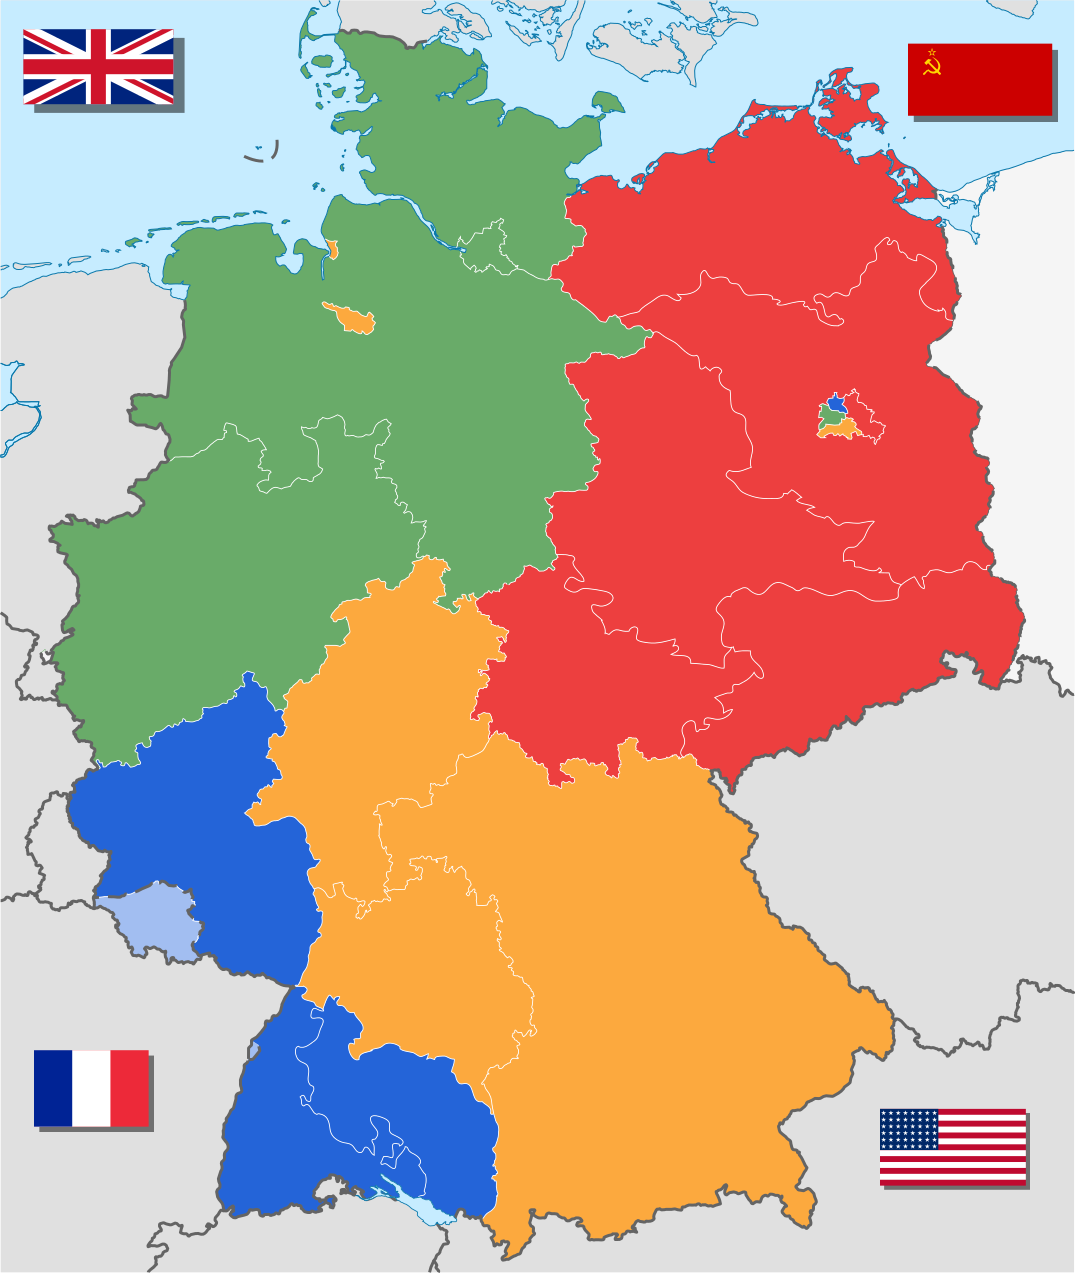 A map showing the areas of occupation in Germany, 1945